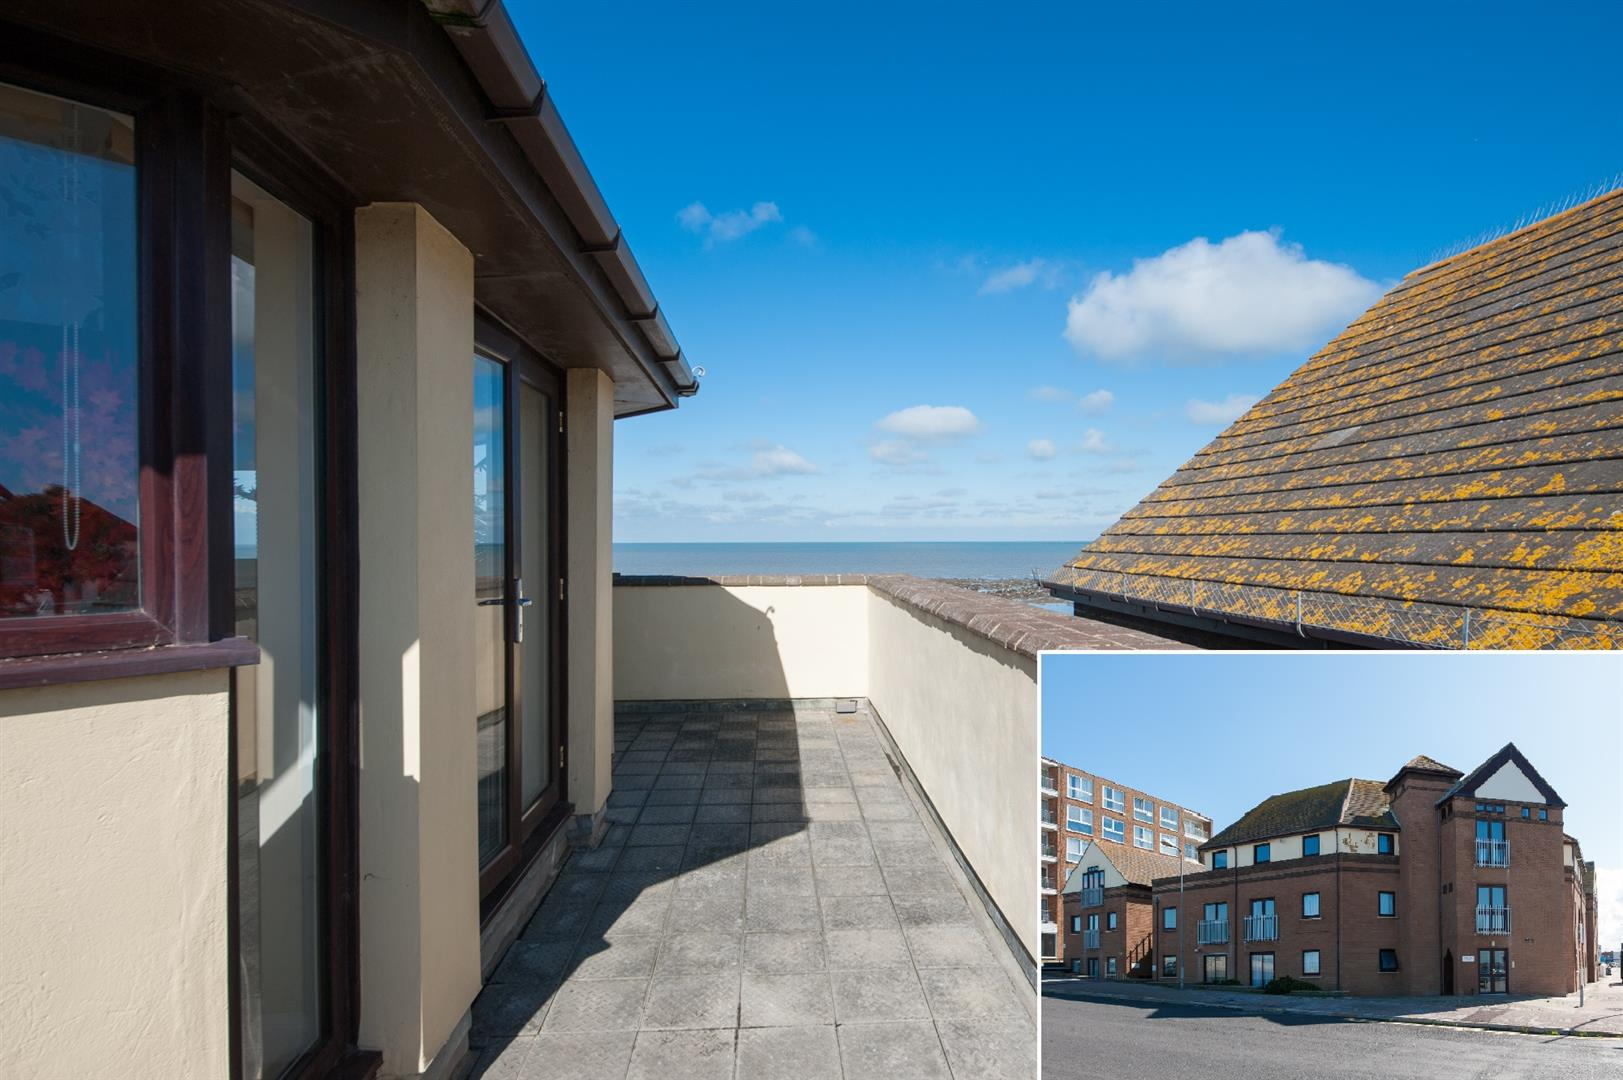 3 Bedrooms Penthouse Flat for sale in The Parade, Birchington